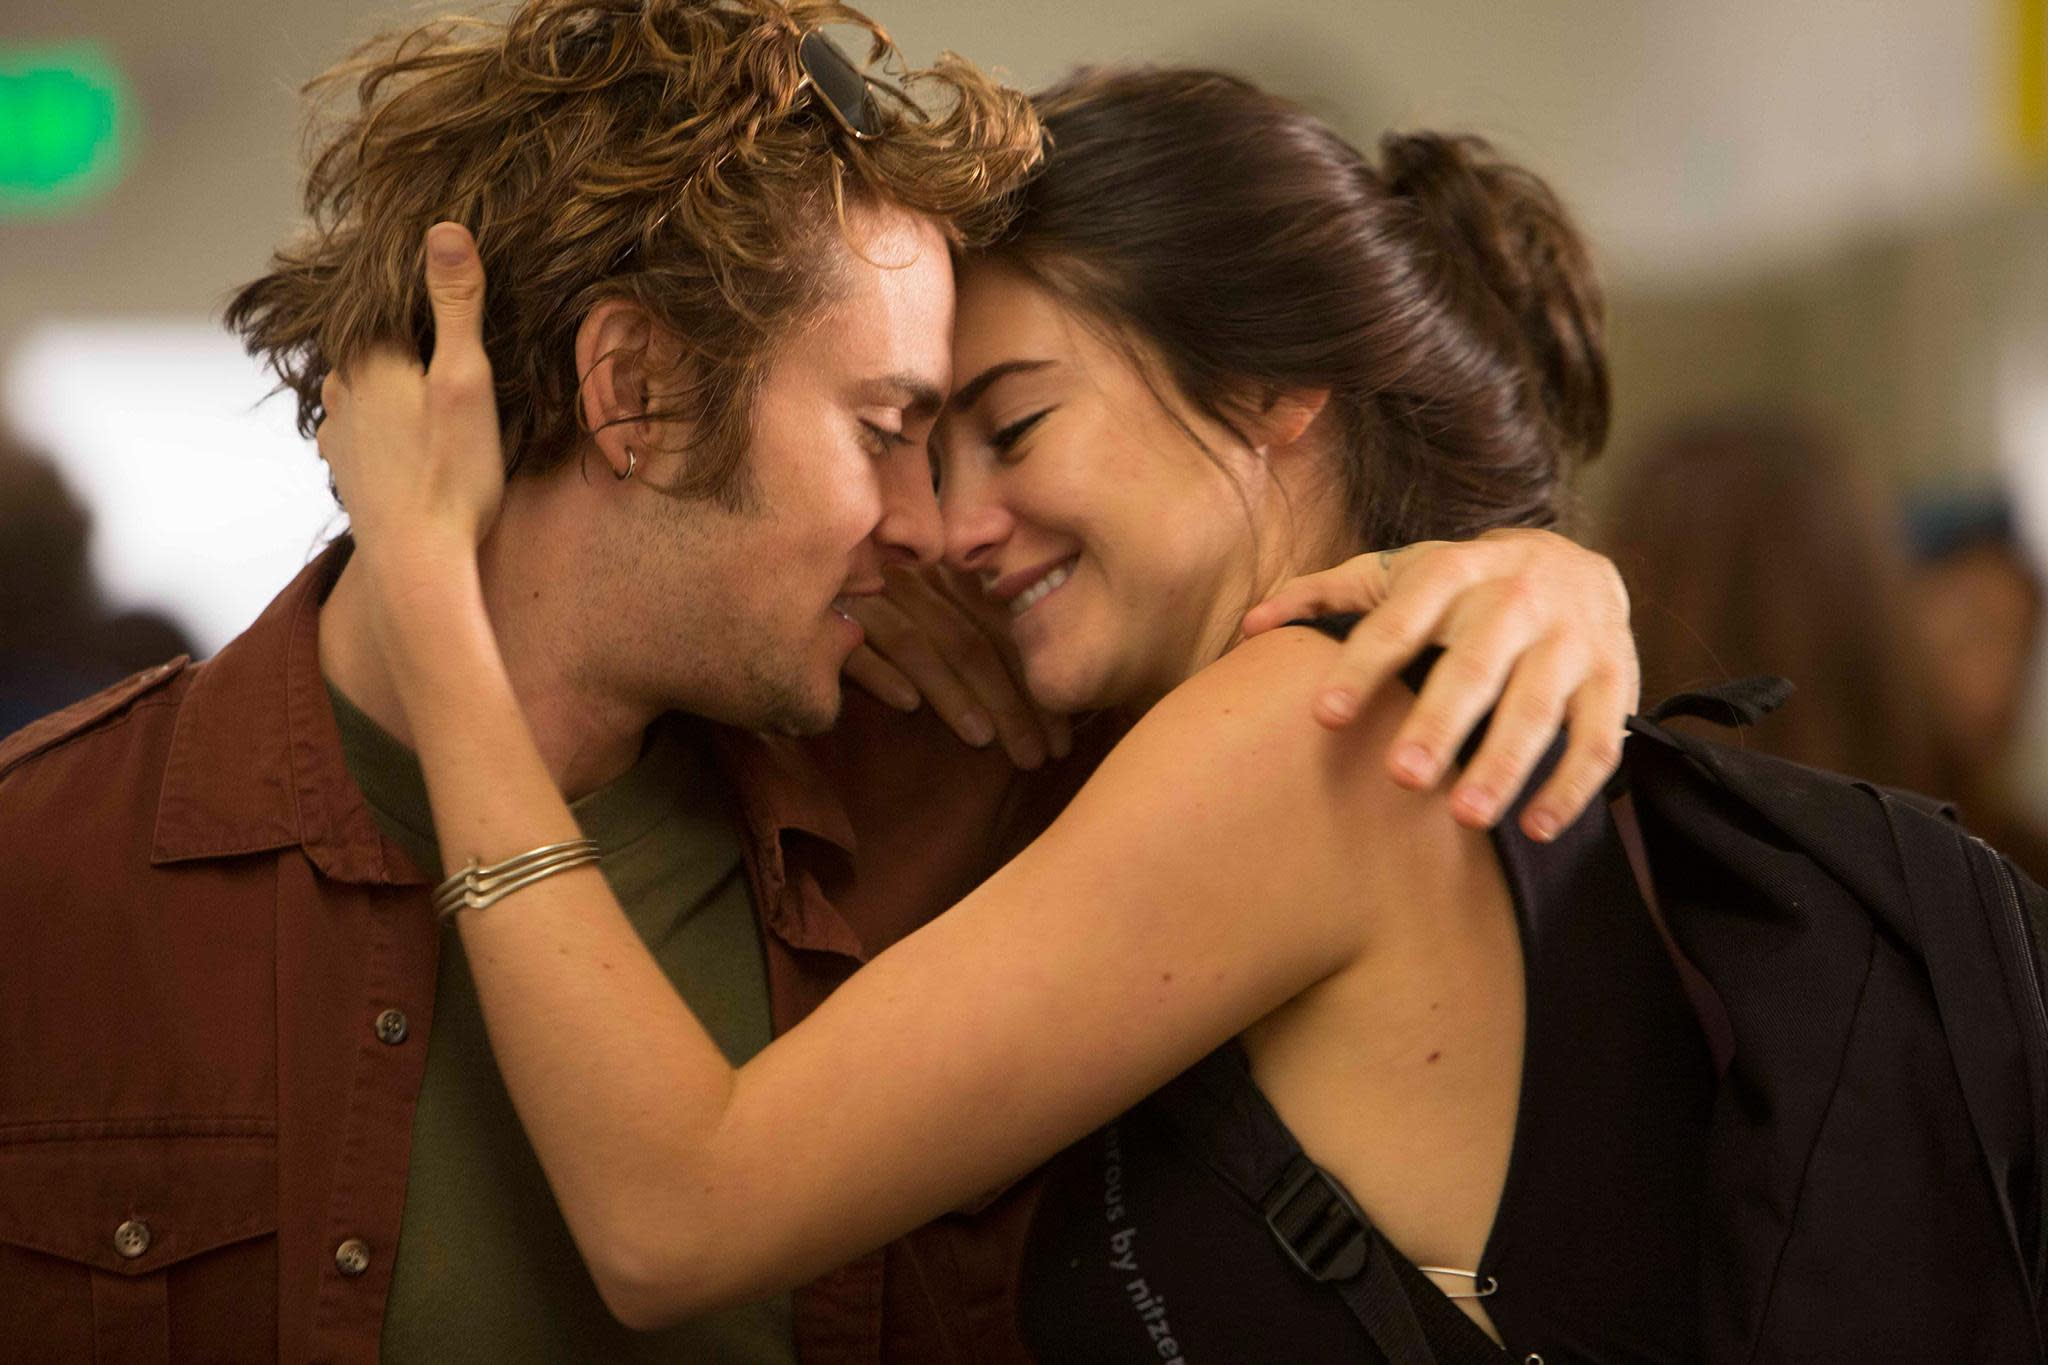 Shiloh Fernandez and Shailene Woodley in 'White Bird in a Blizzard'